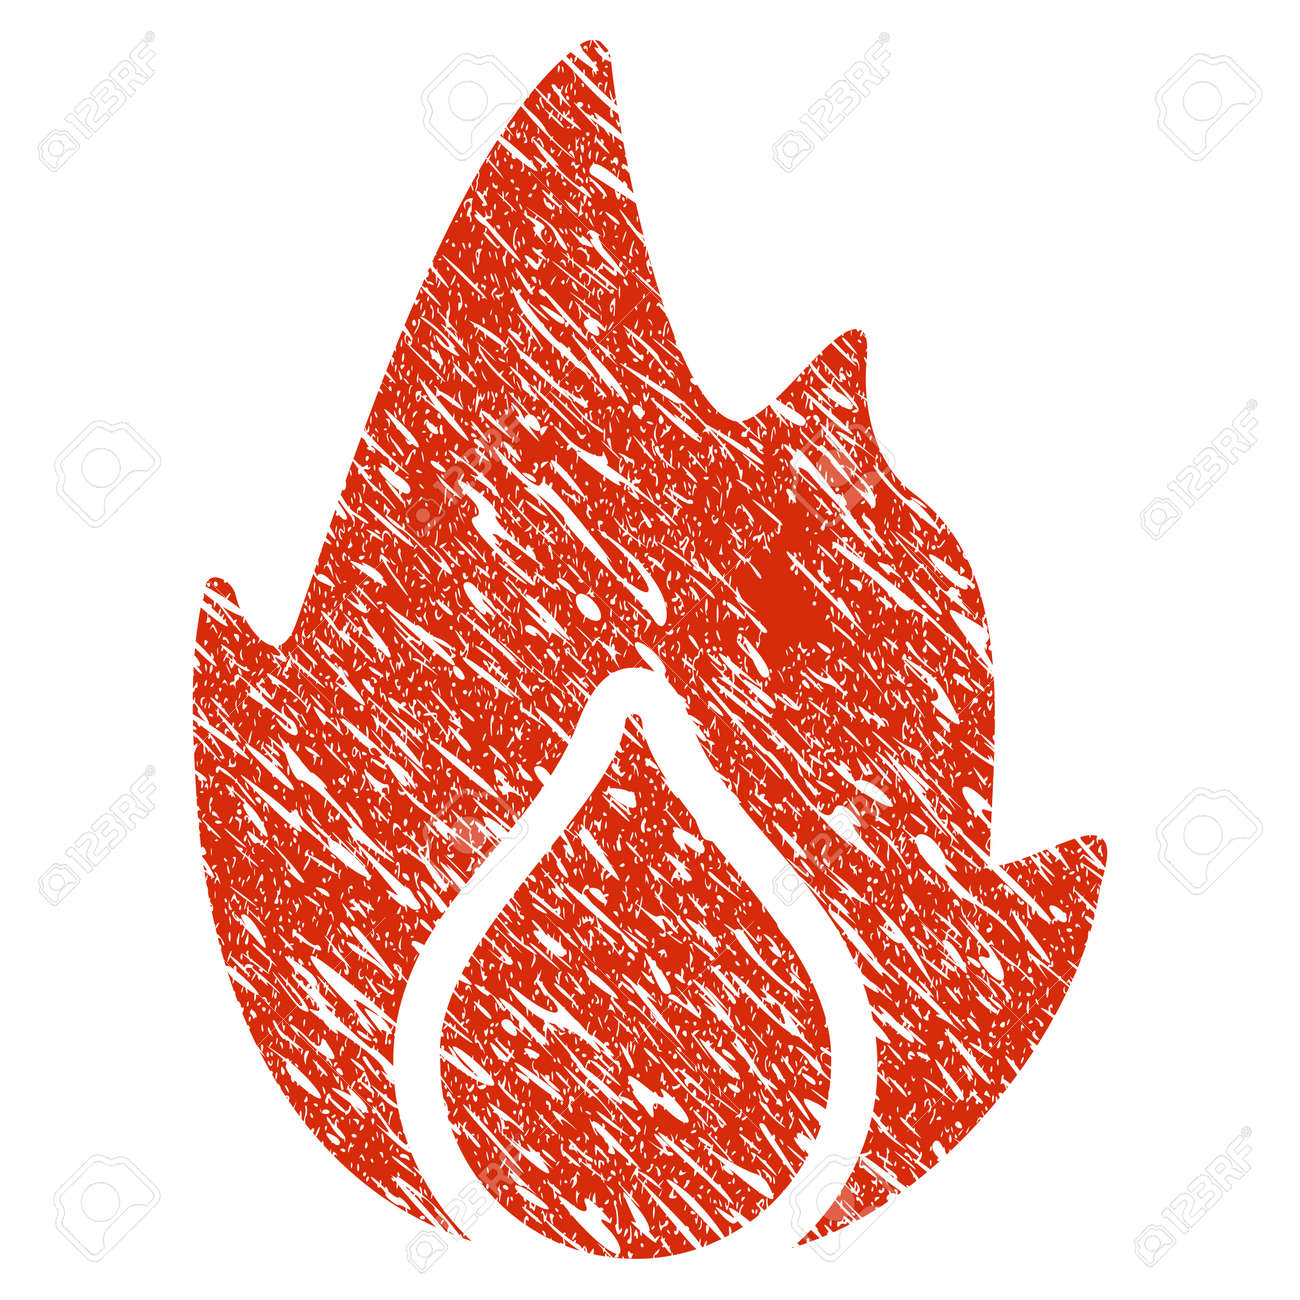 Grunge fire and water drop rubber seal stamp watermark icon fire grunge fire and water drop rubber seal stamp watermark icon fire and water drop symbol biocorpaavc Choice Image